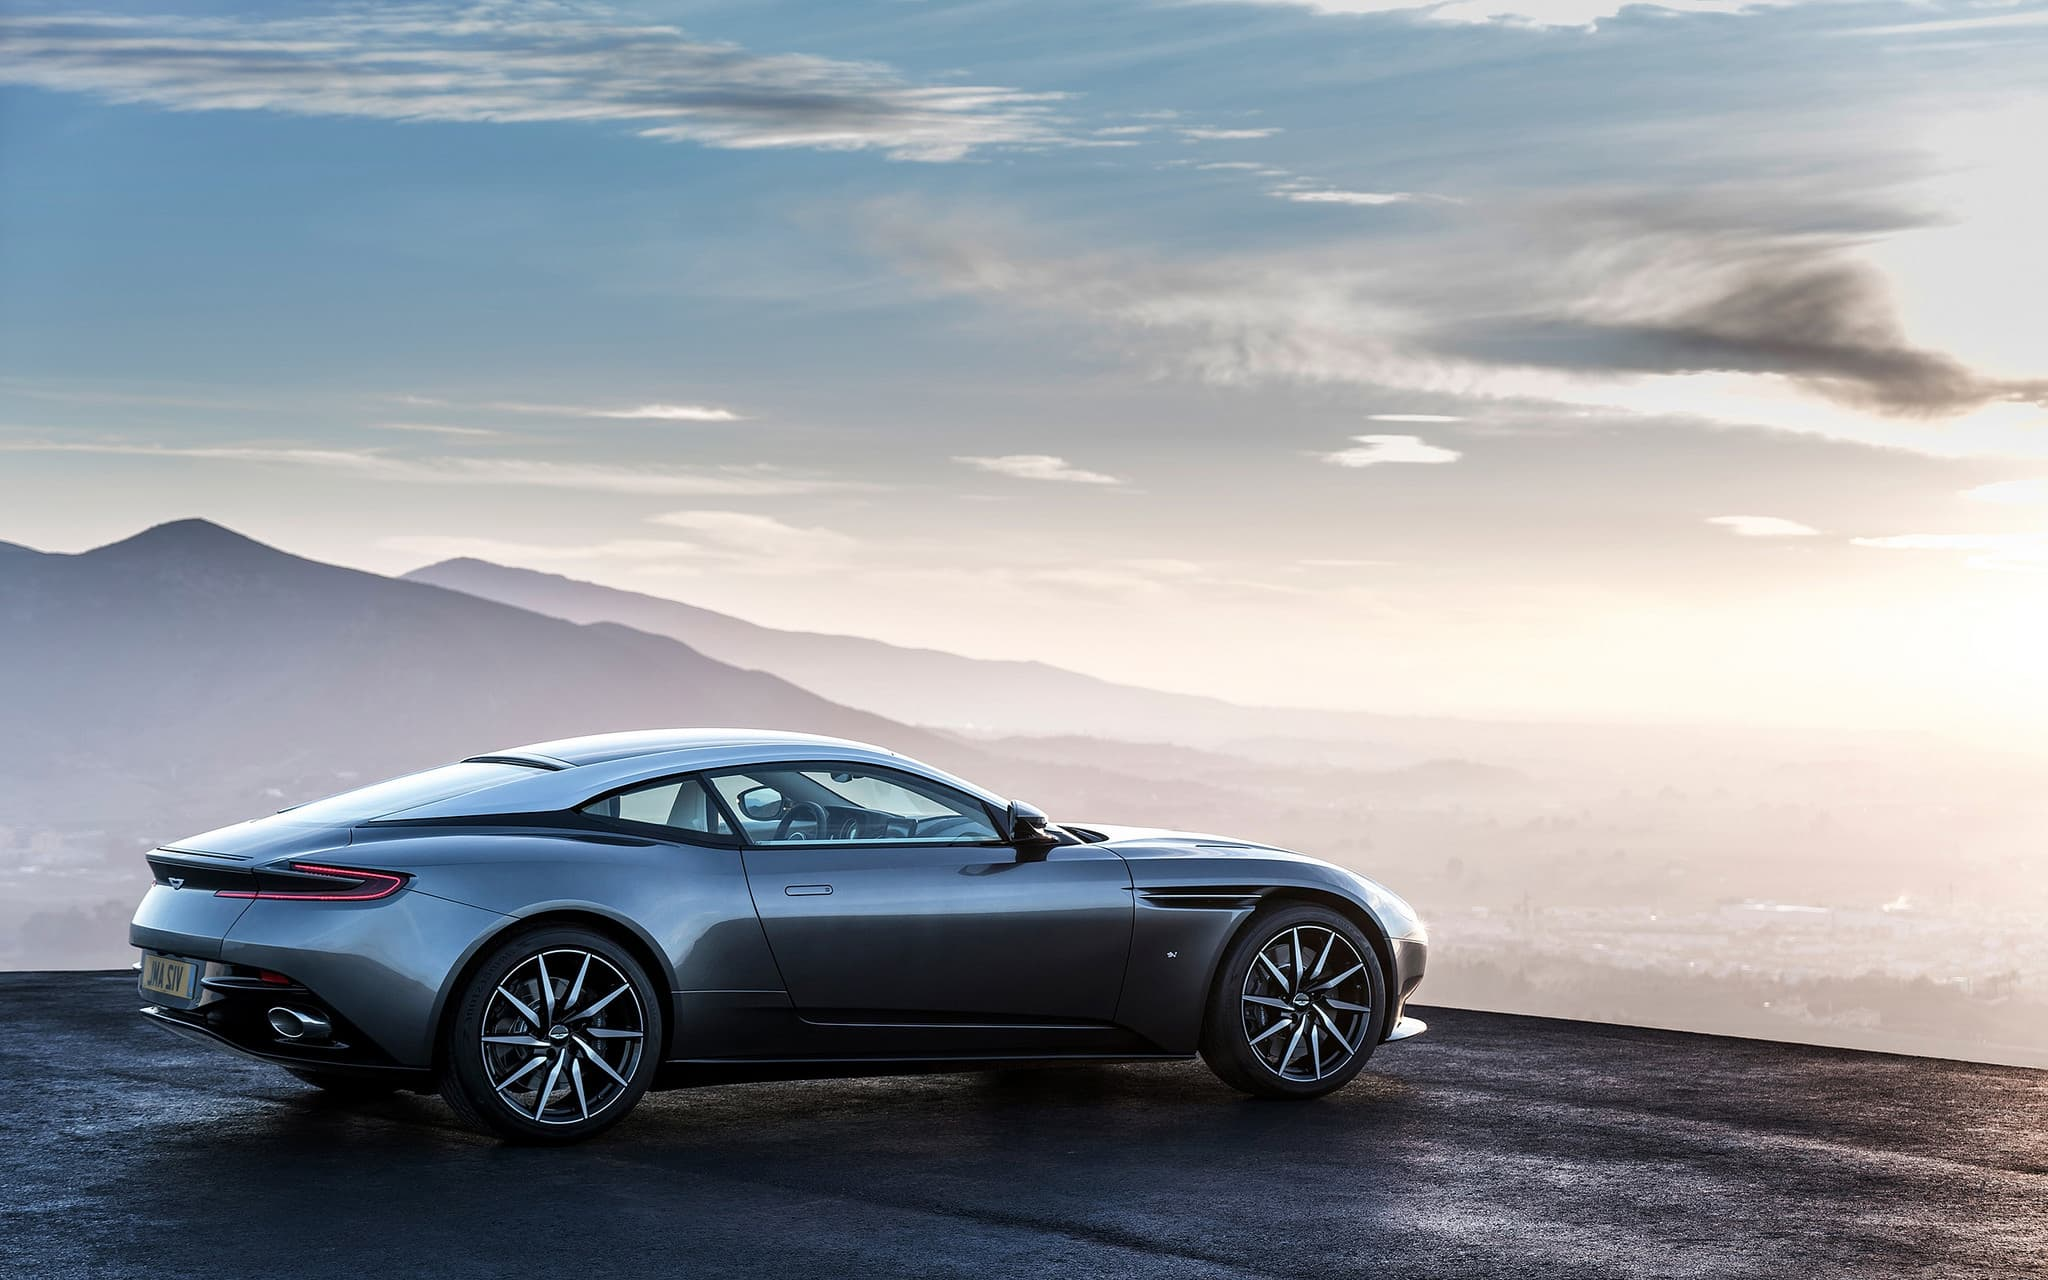 2016 Aston Martin Db11 Wallpapers Hd High Resolution Download